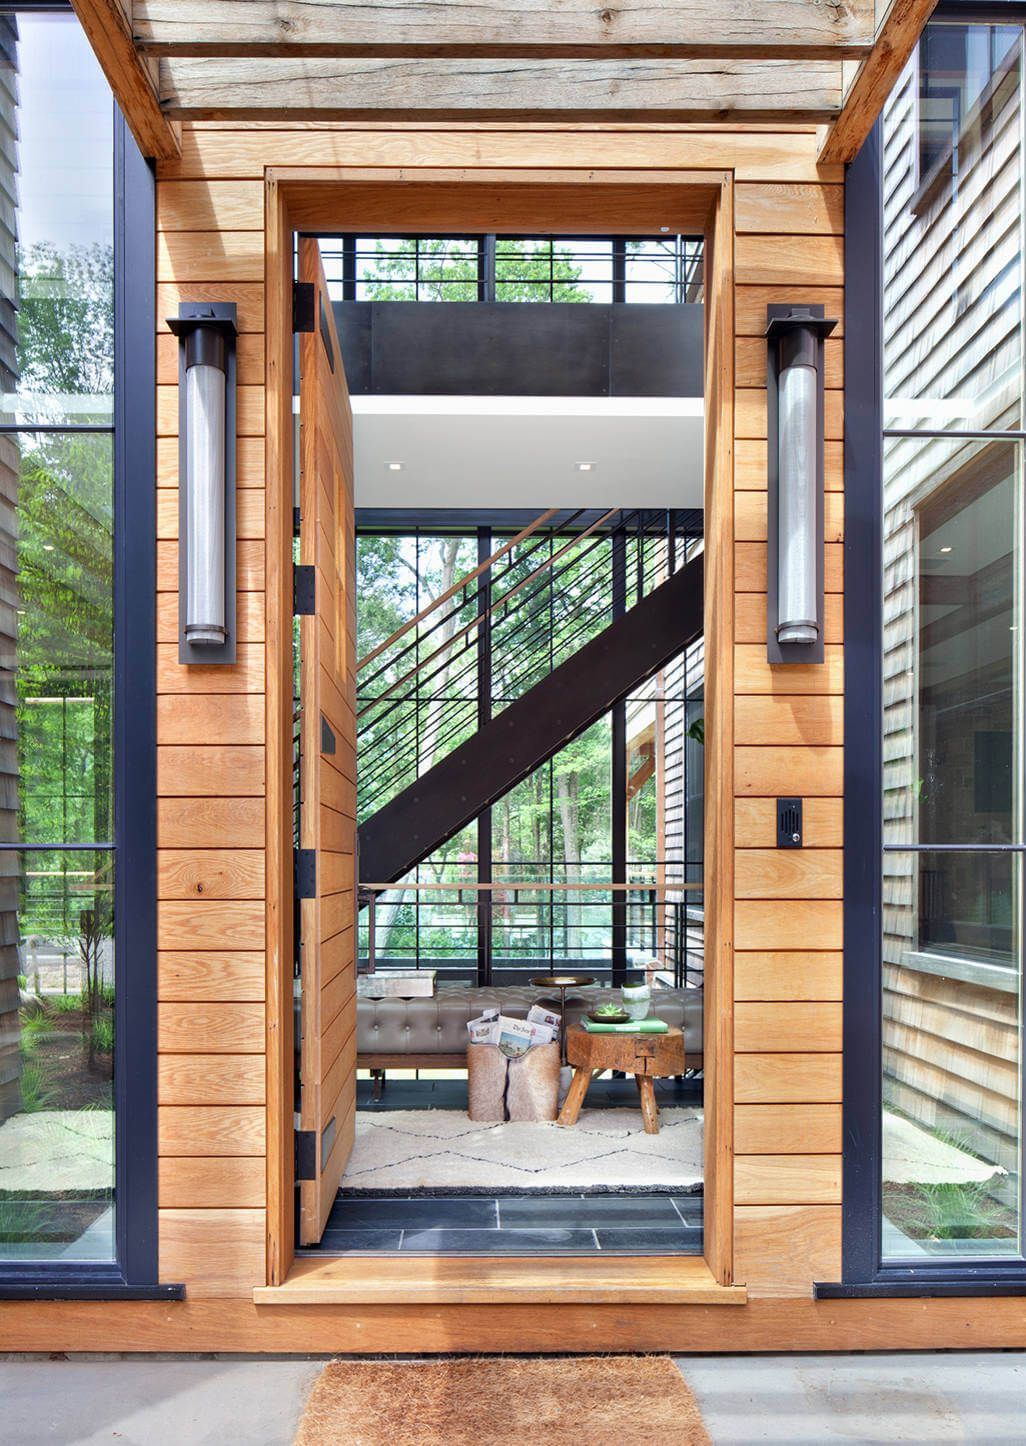 House wooden window design  modern lake house  apd light fittings and front entry